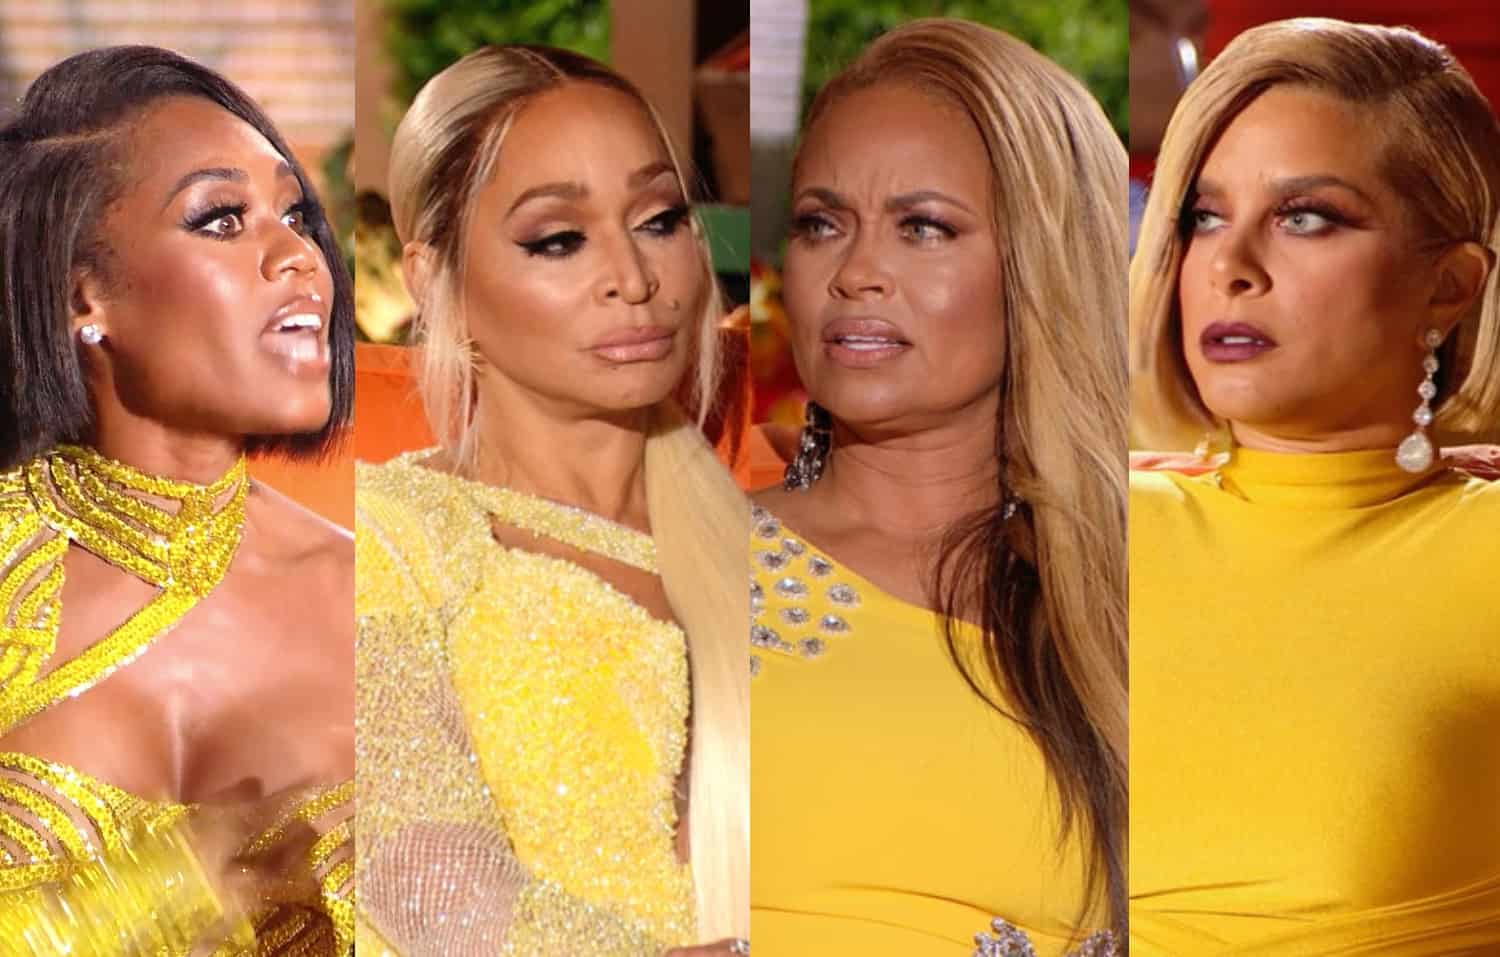 """VIDEO: Watch RHOP Reunion Trailer! Ashley and Gizelle are Confronted About Cheating Rumors, Plus Monique Admits She Wanted to Finish Candiace Off as Husband Chris Tells Her to """"Get Some Help"""""""